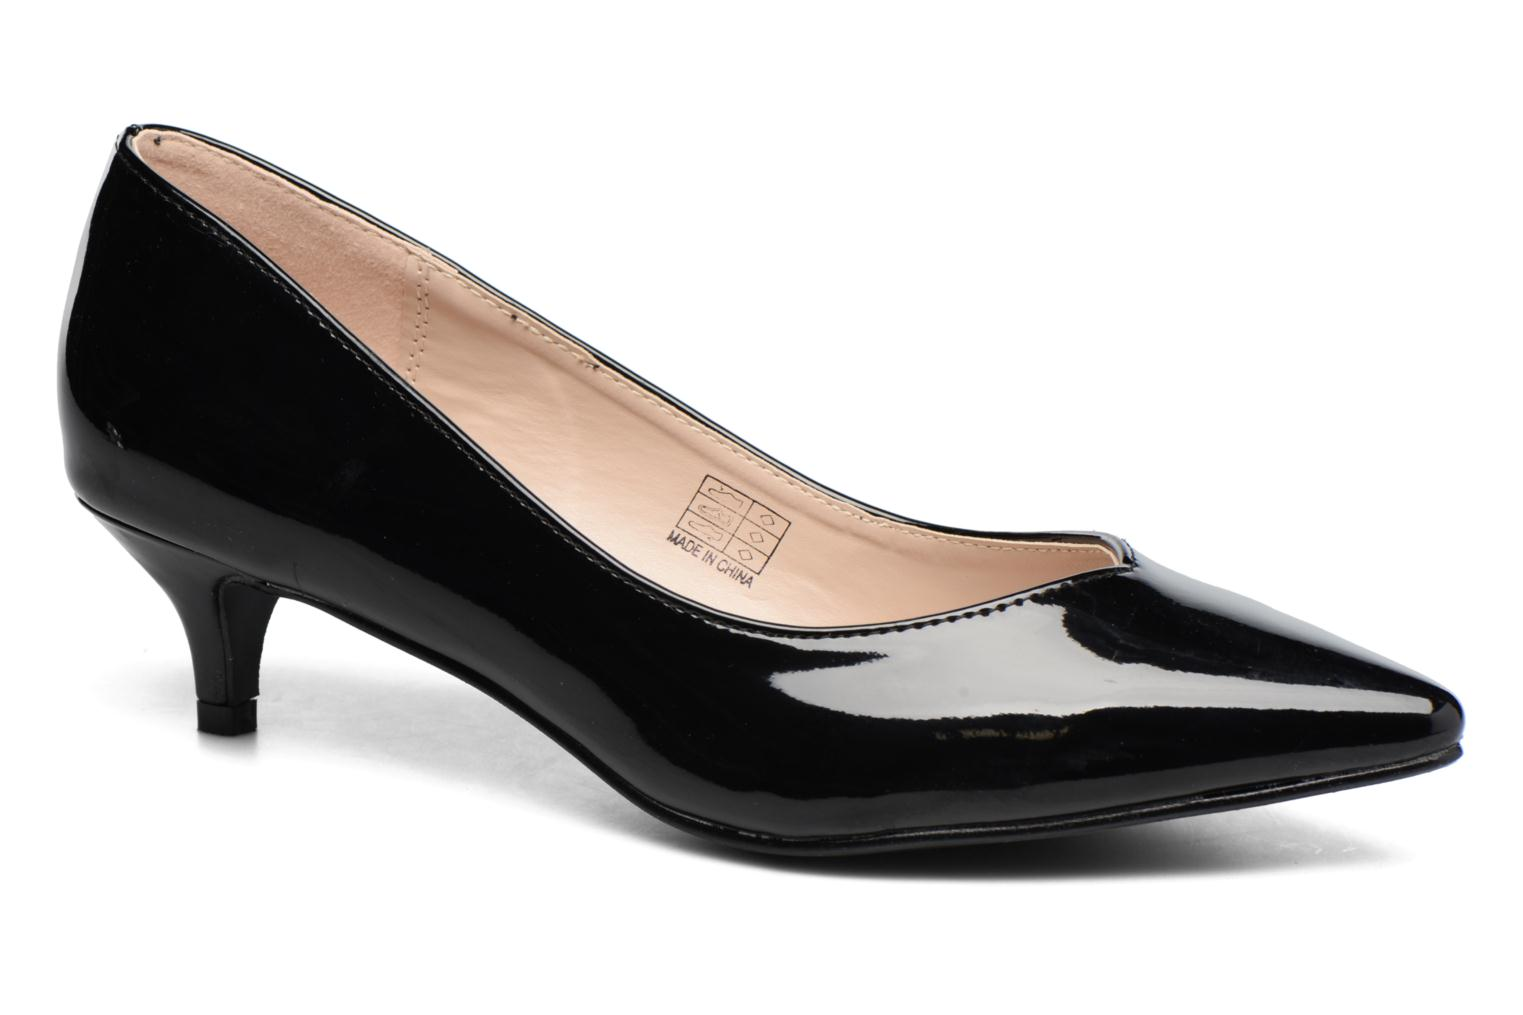 Marques Chaussure femme I Love Shoes femme THORA Black Patent